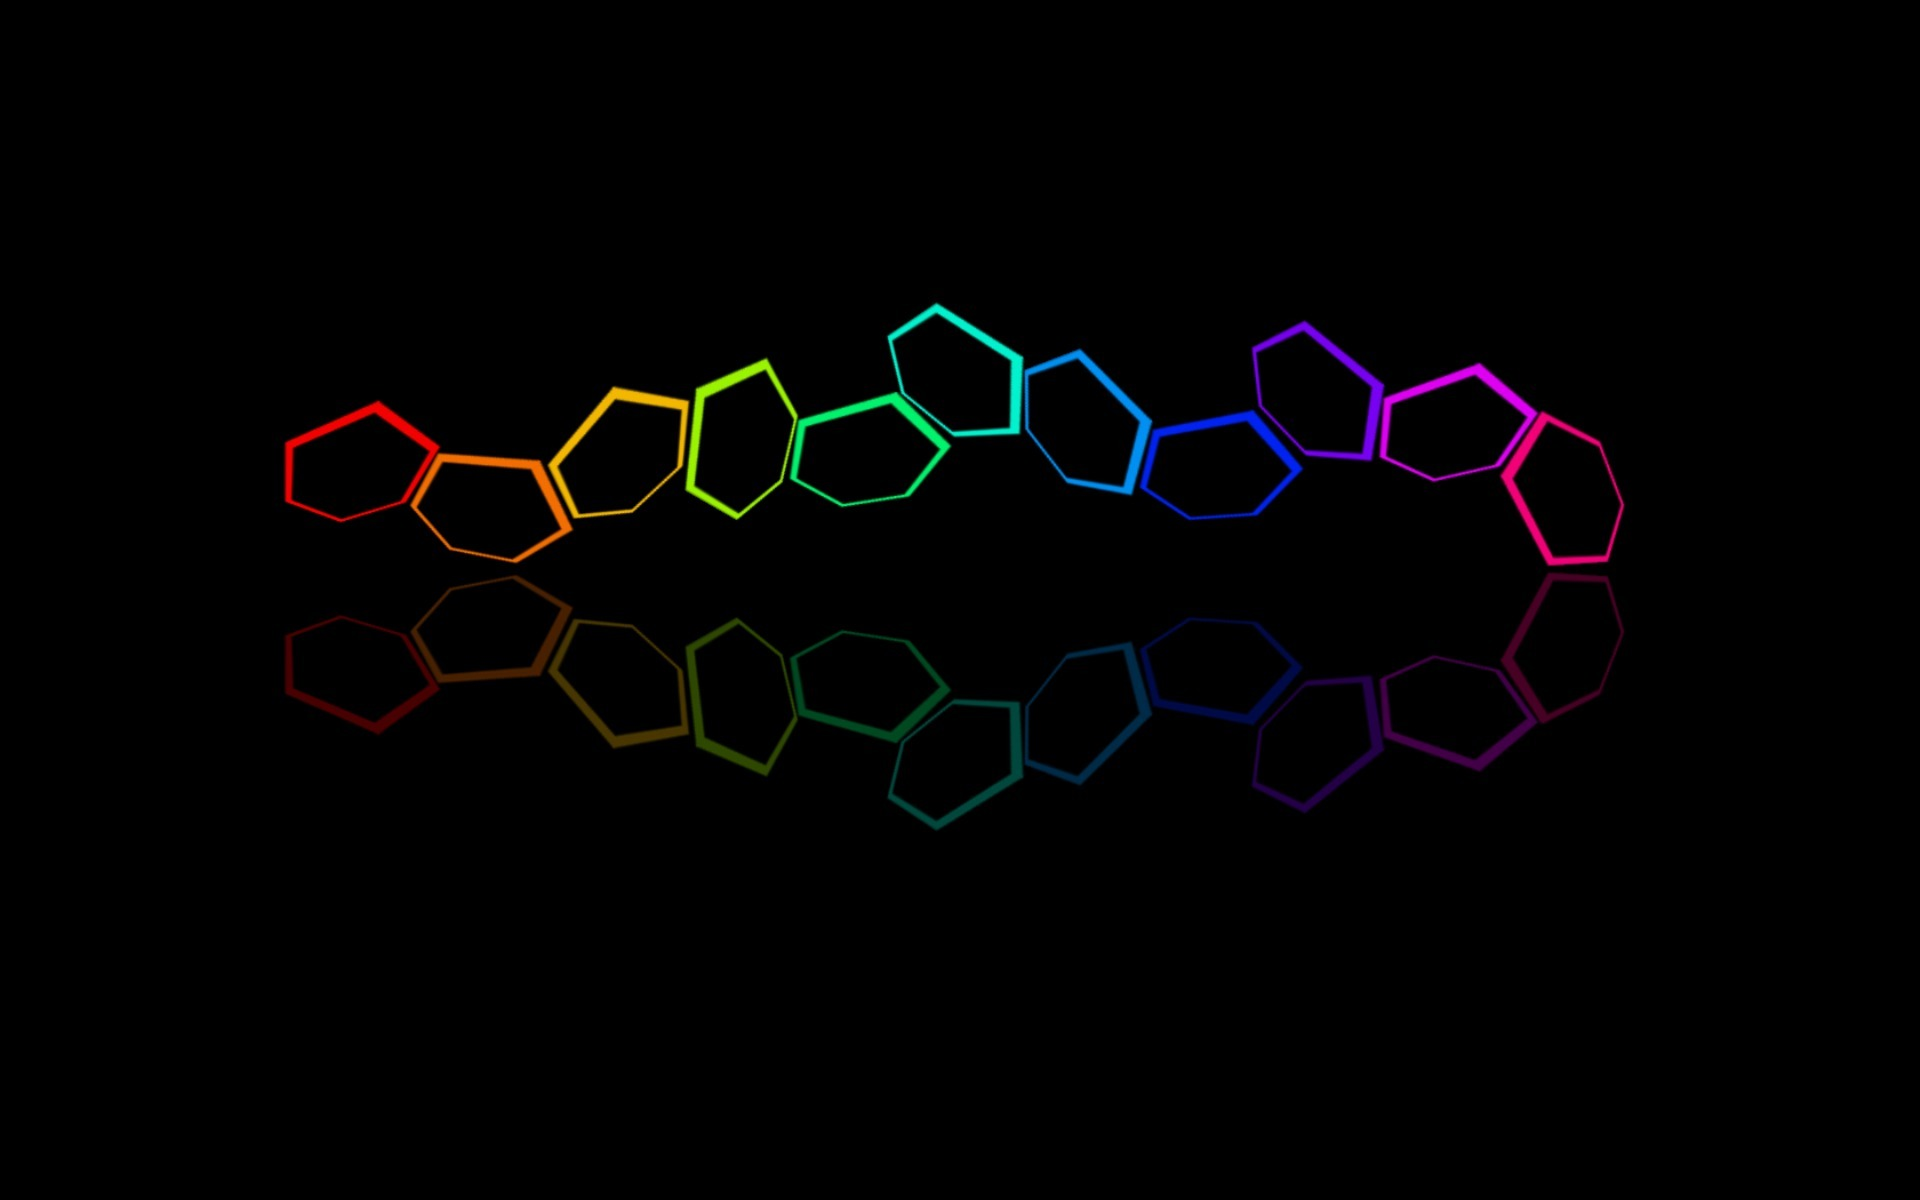 colorful dark backgrounds 18339